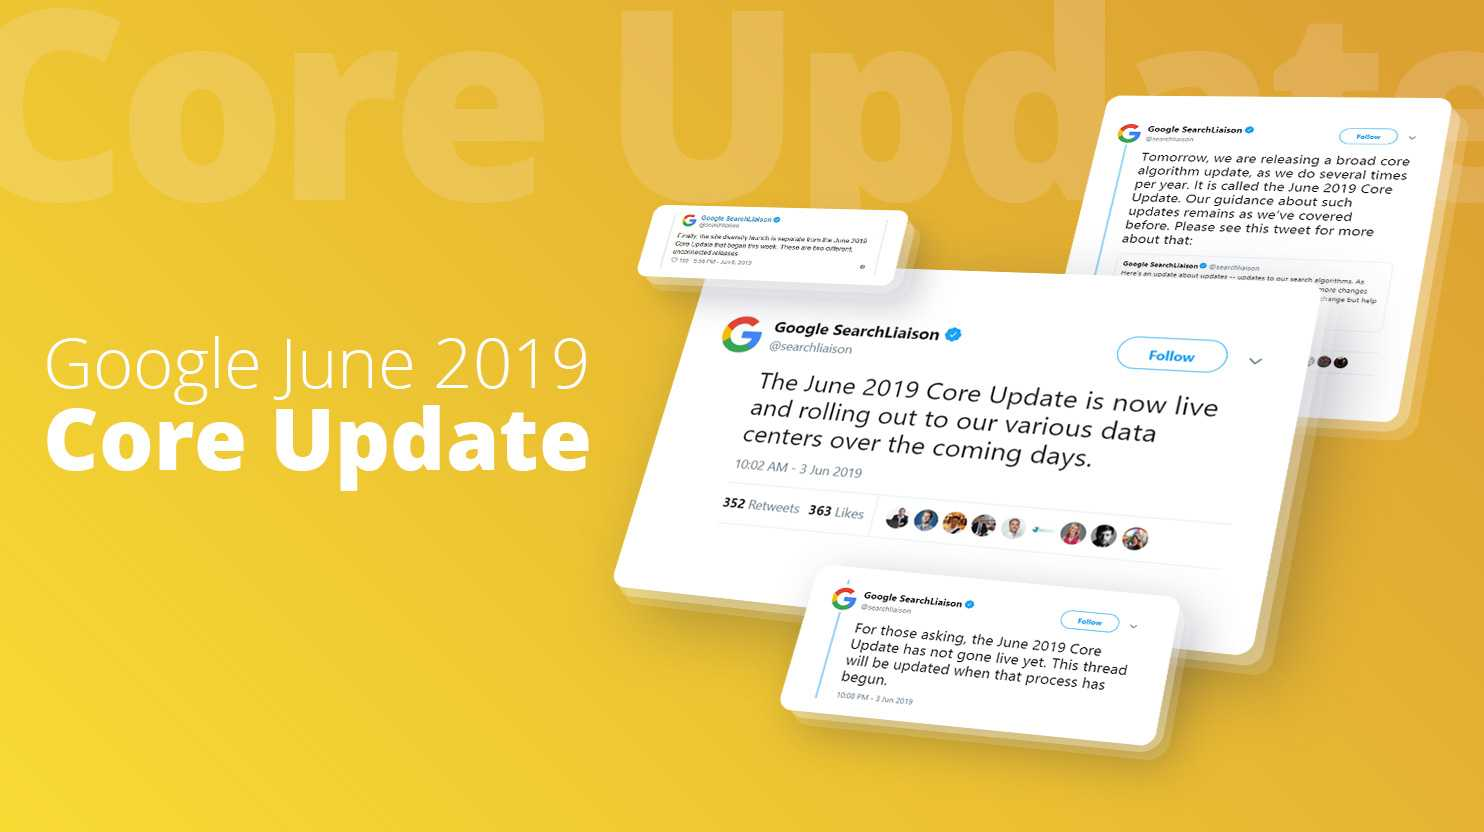 What You Should Know About June 2019 Core Update - 10Web